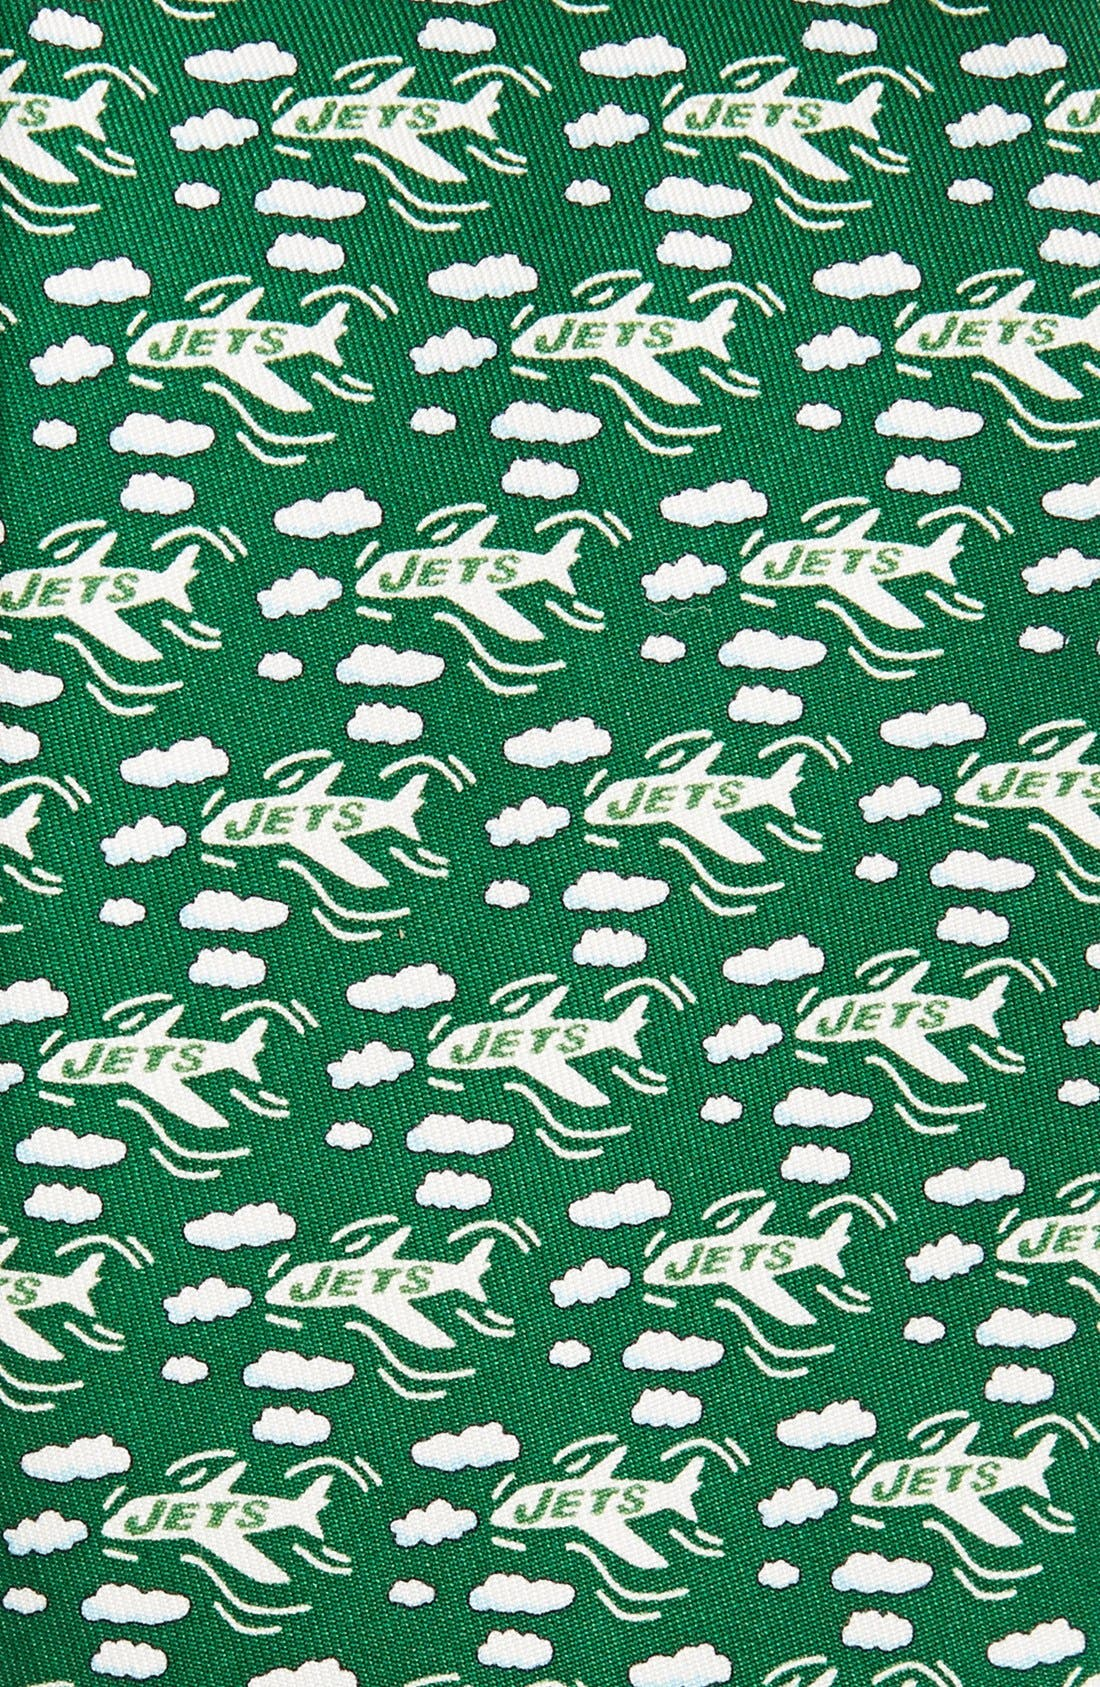 New York Jets - NFL Woven Silk Tie,                             Alternate thumbnail 2, color,                             Green